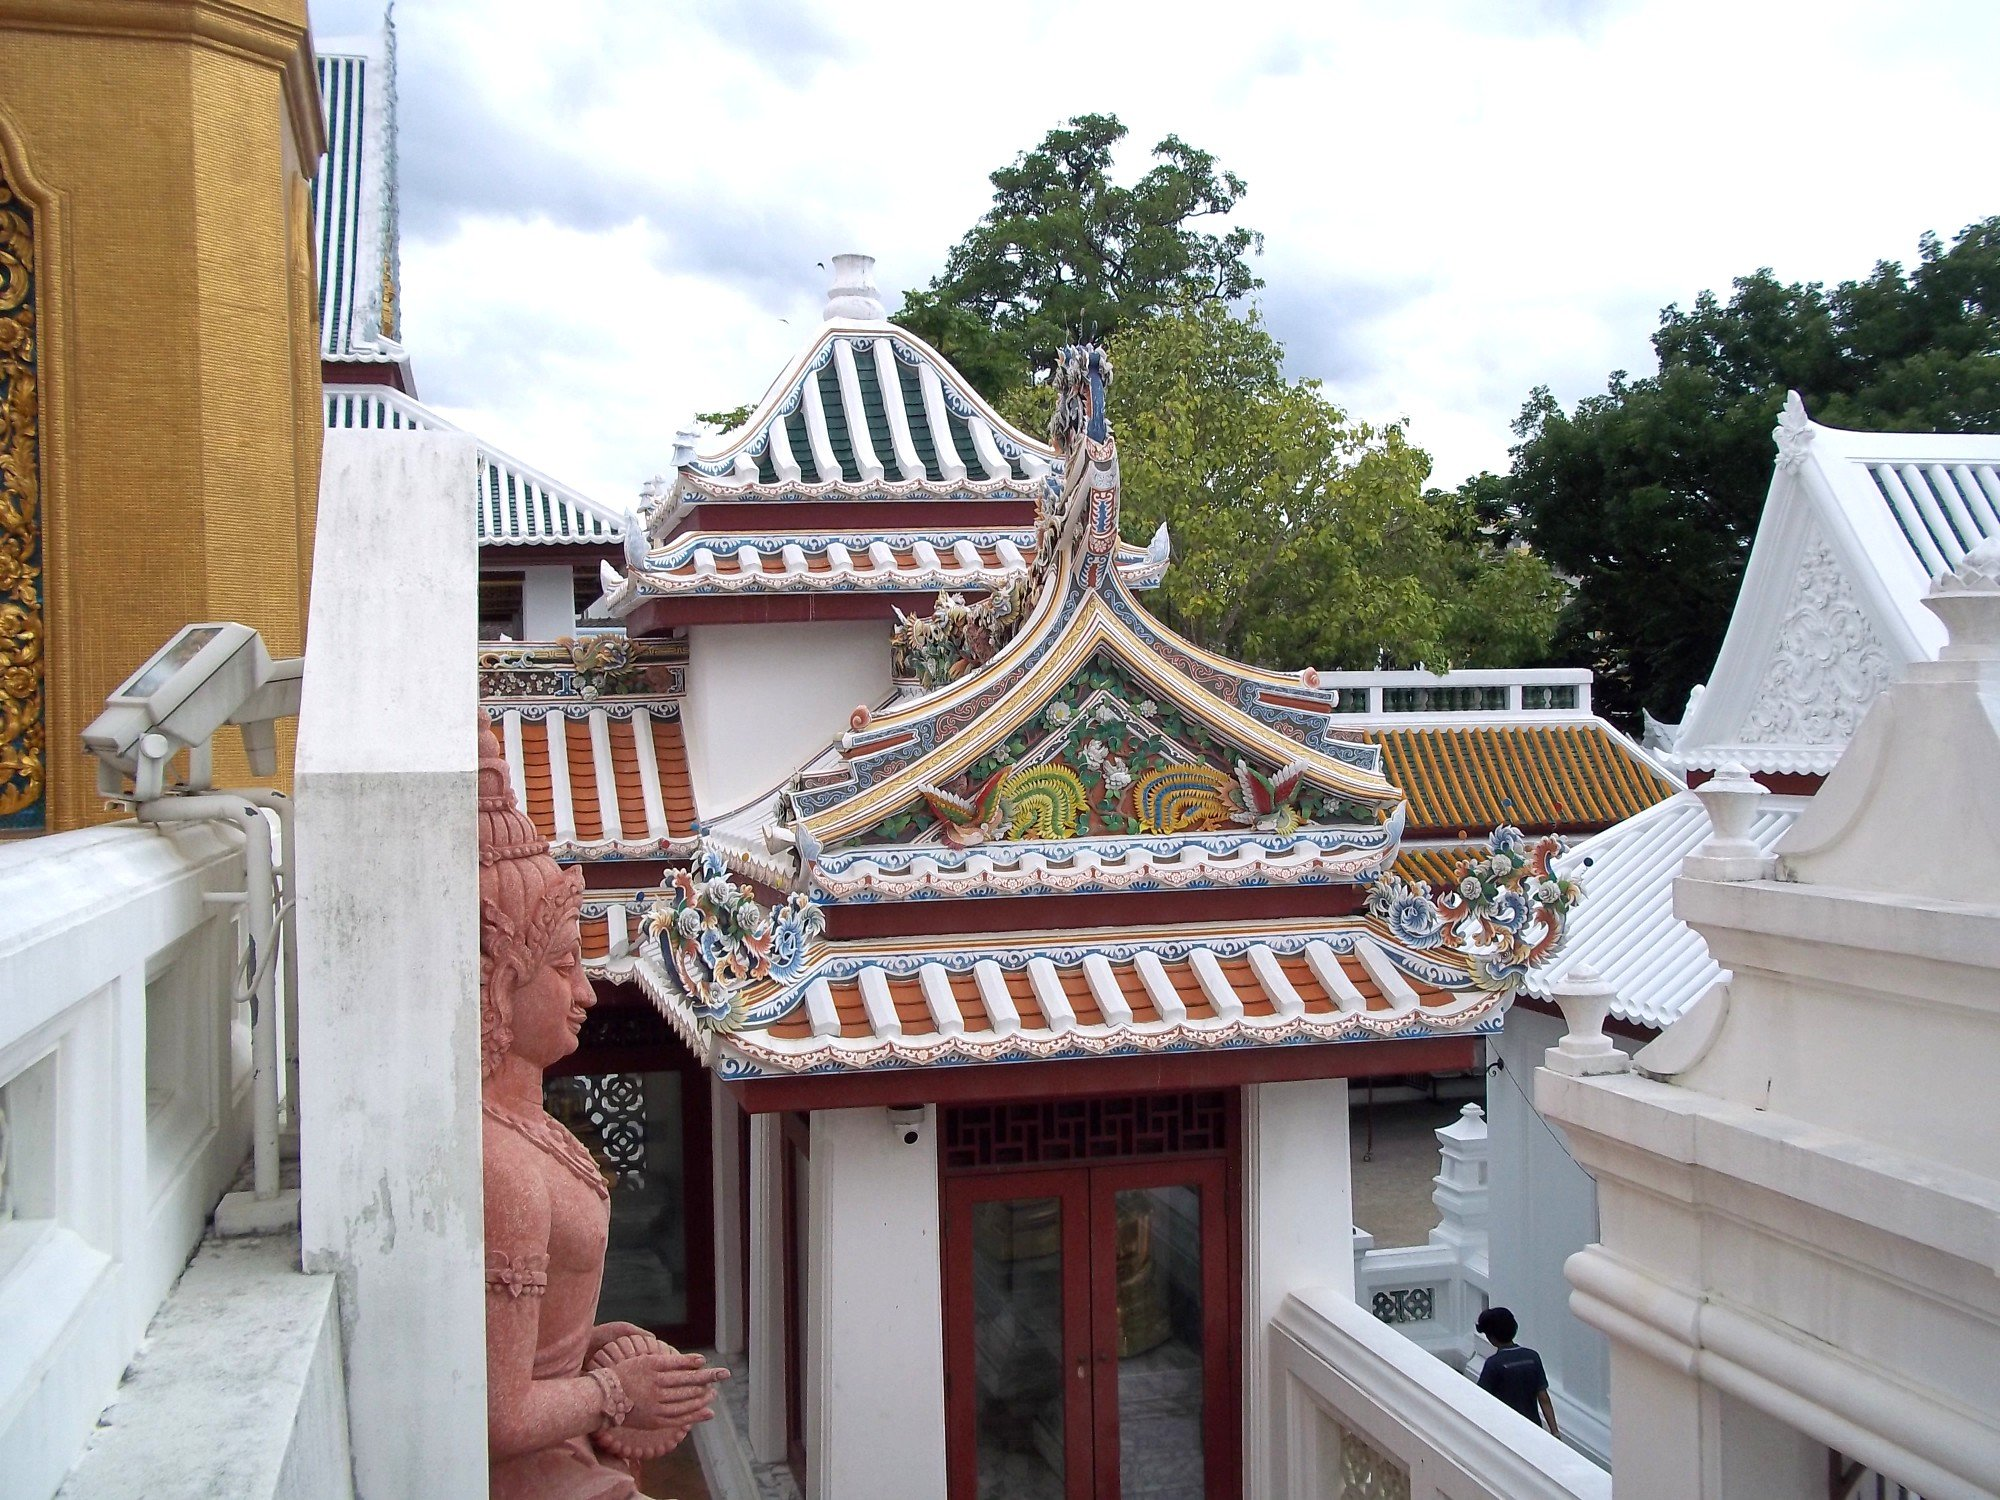 Chinese style buildings at Wat Bowonniwet